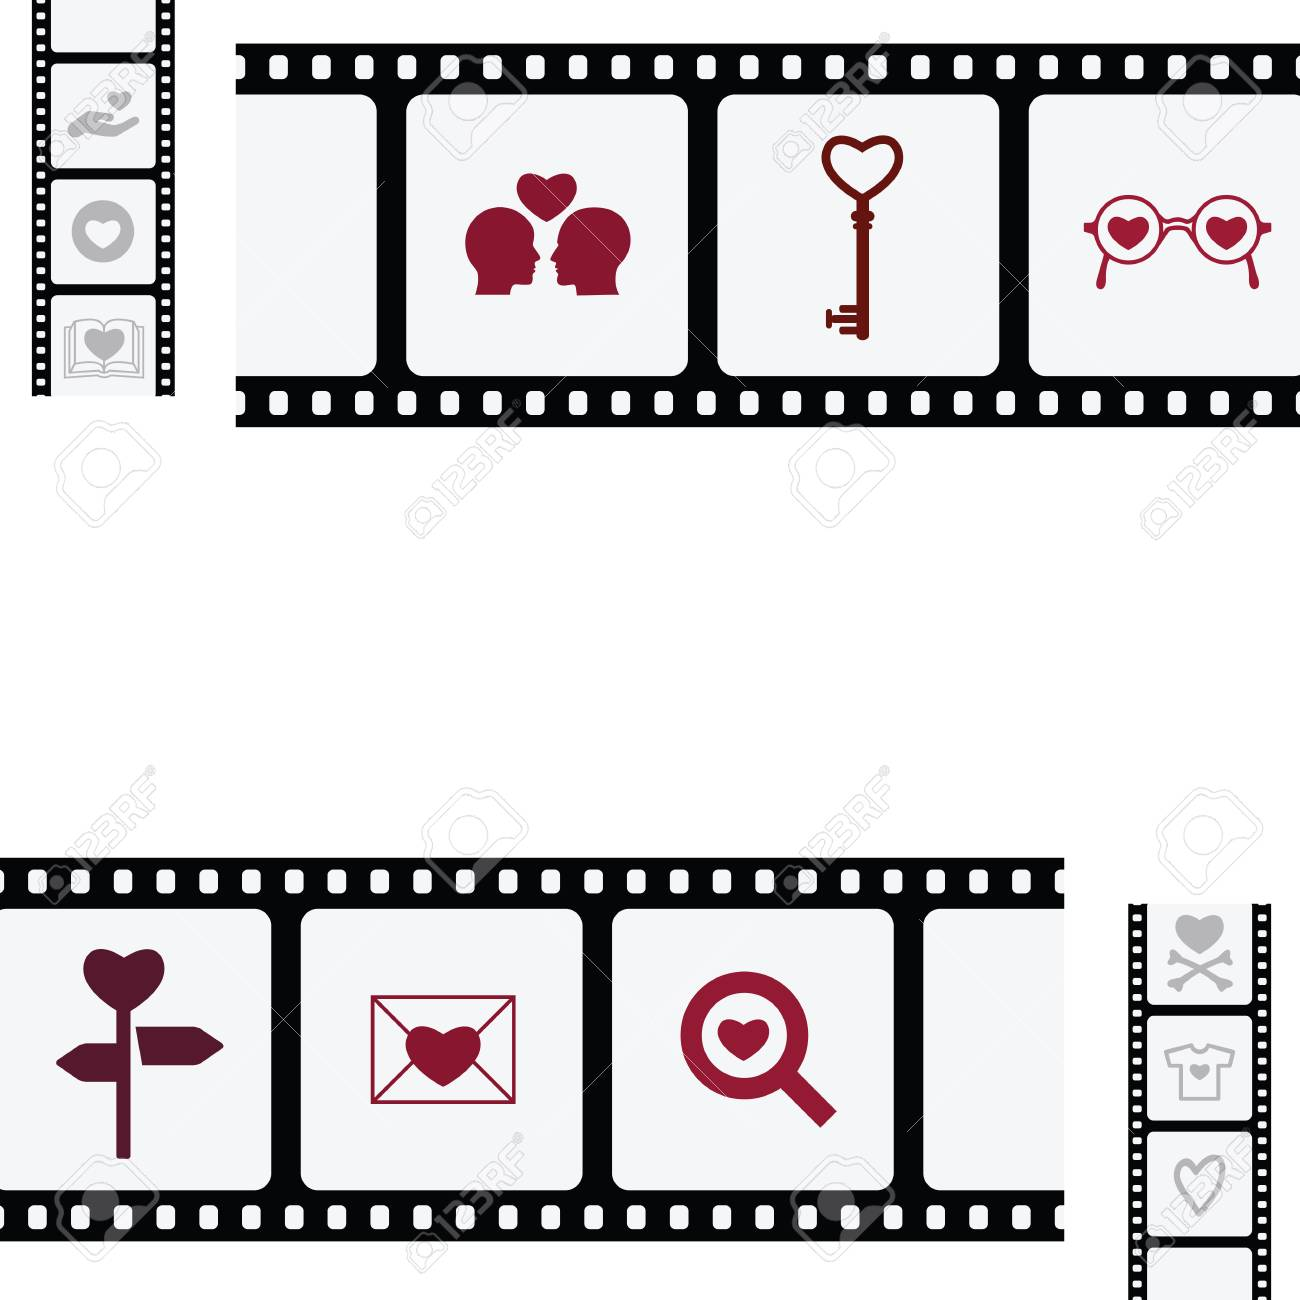 vector illustration of film tape with hearts for romantic movie